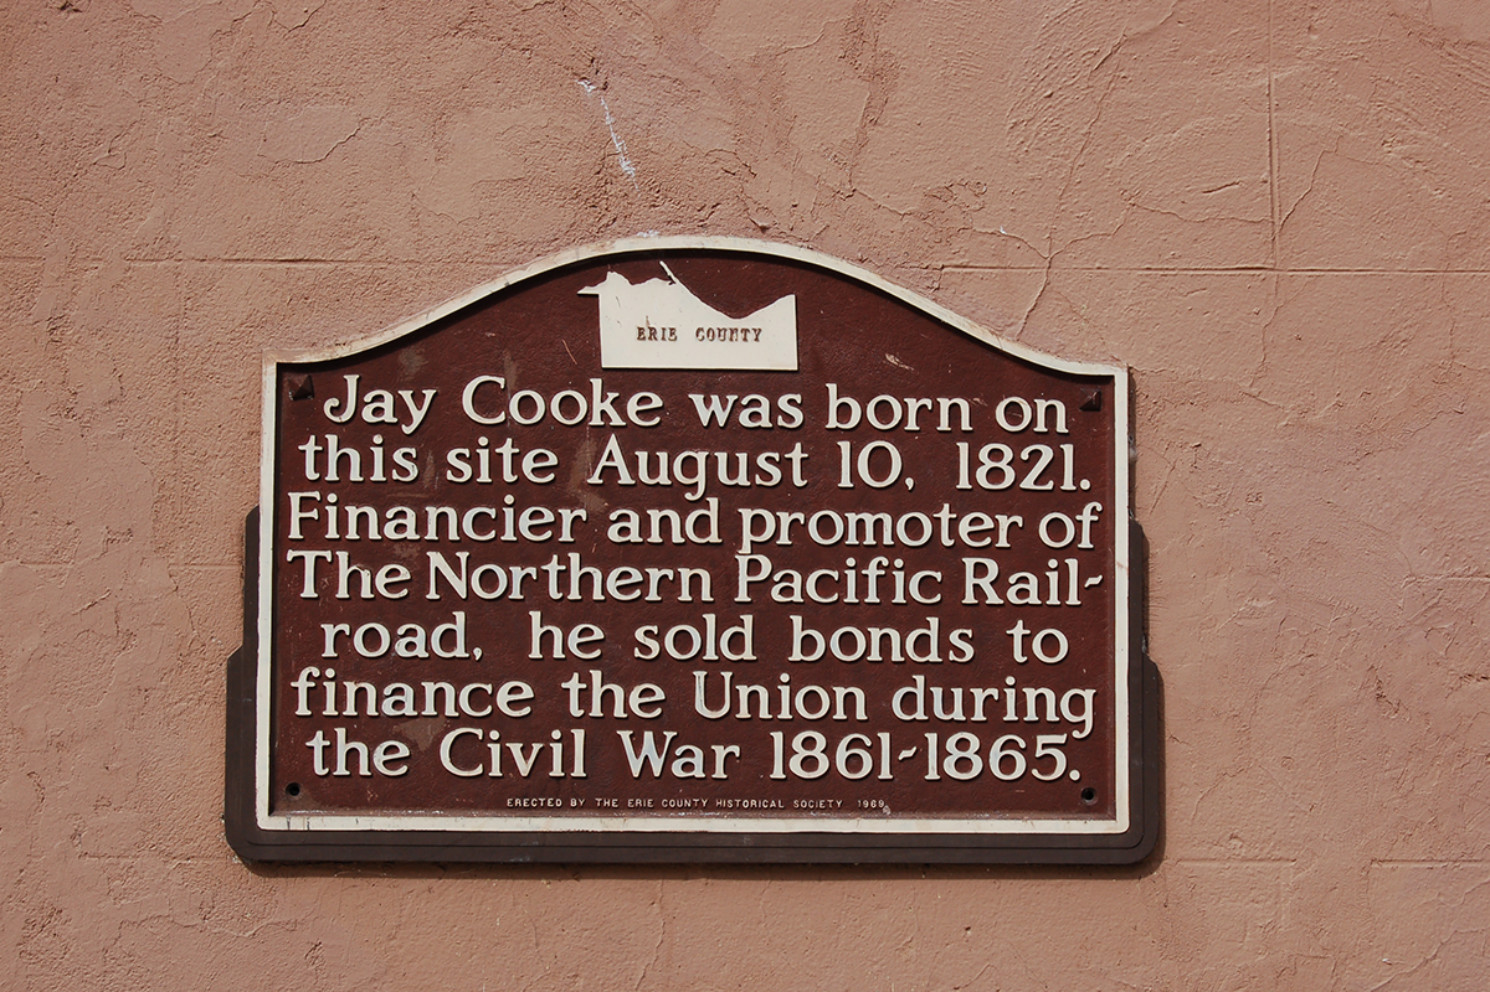 Jay Cooke Marker - Erie County Ohio Historical Society